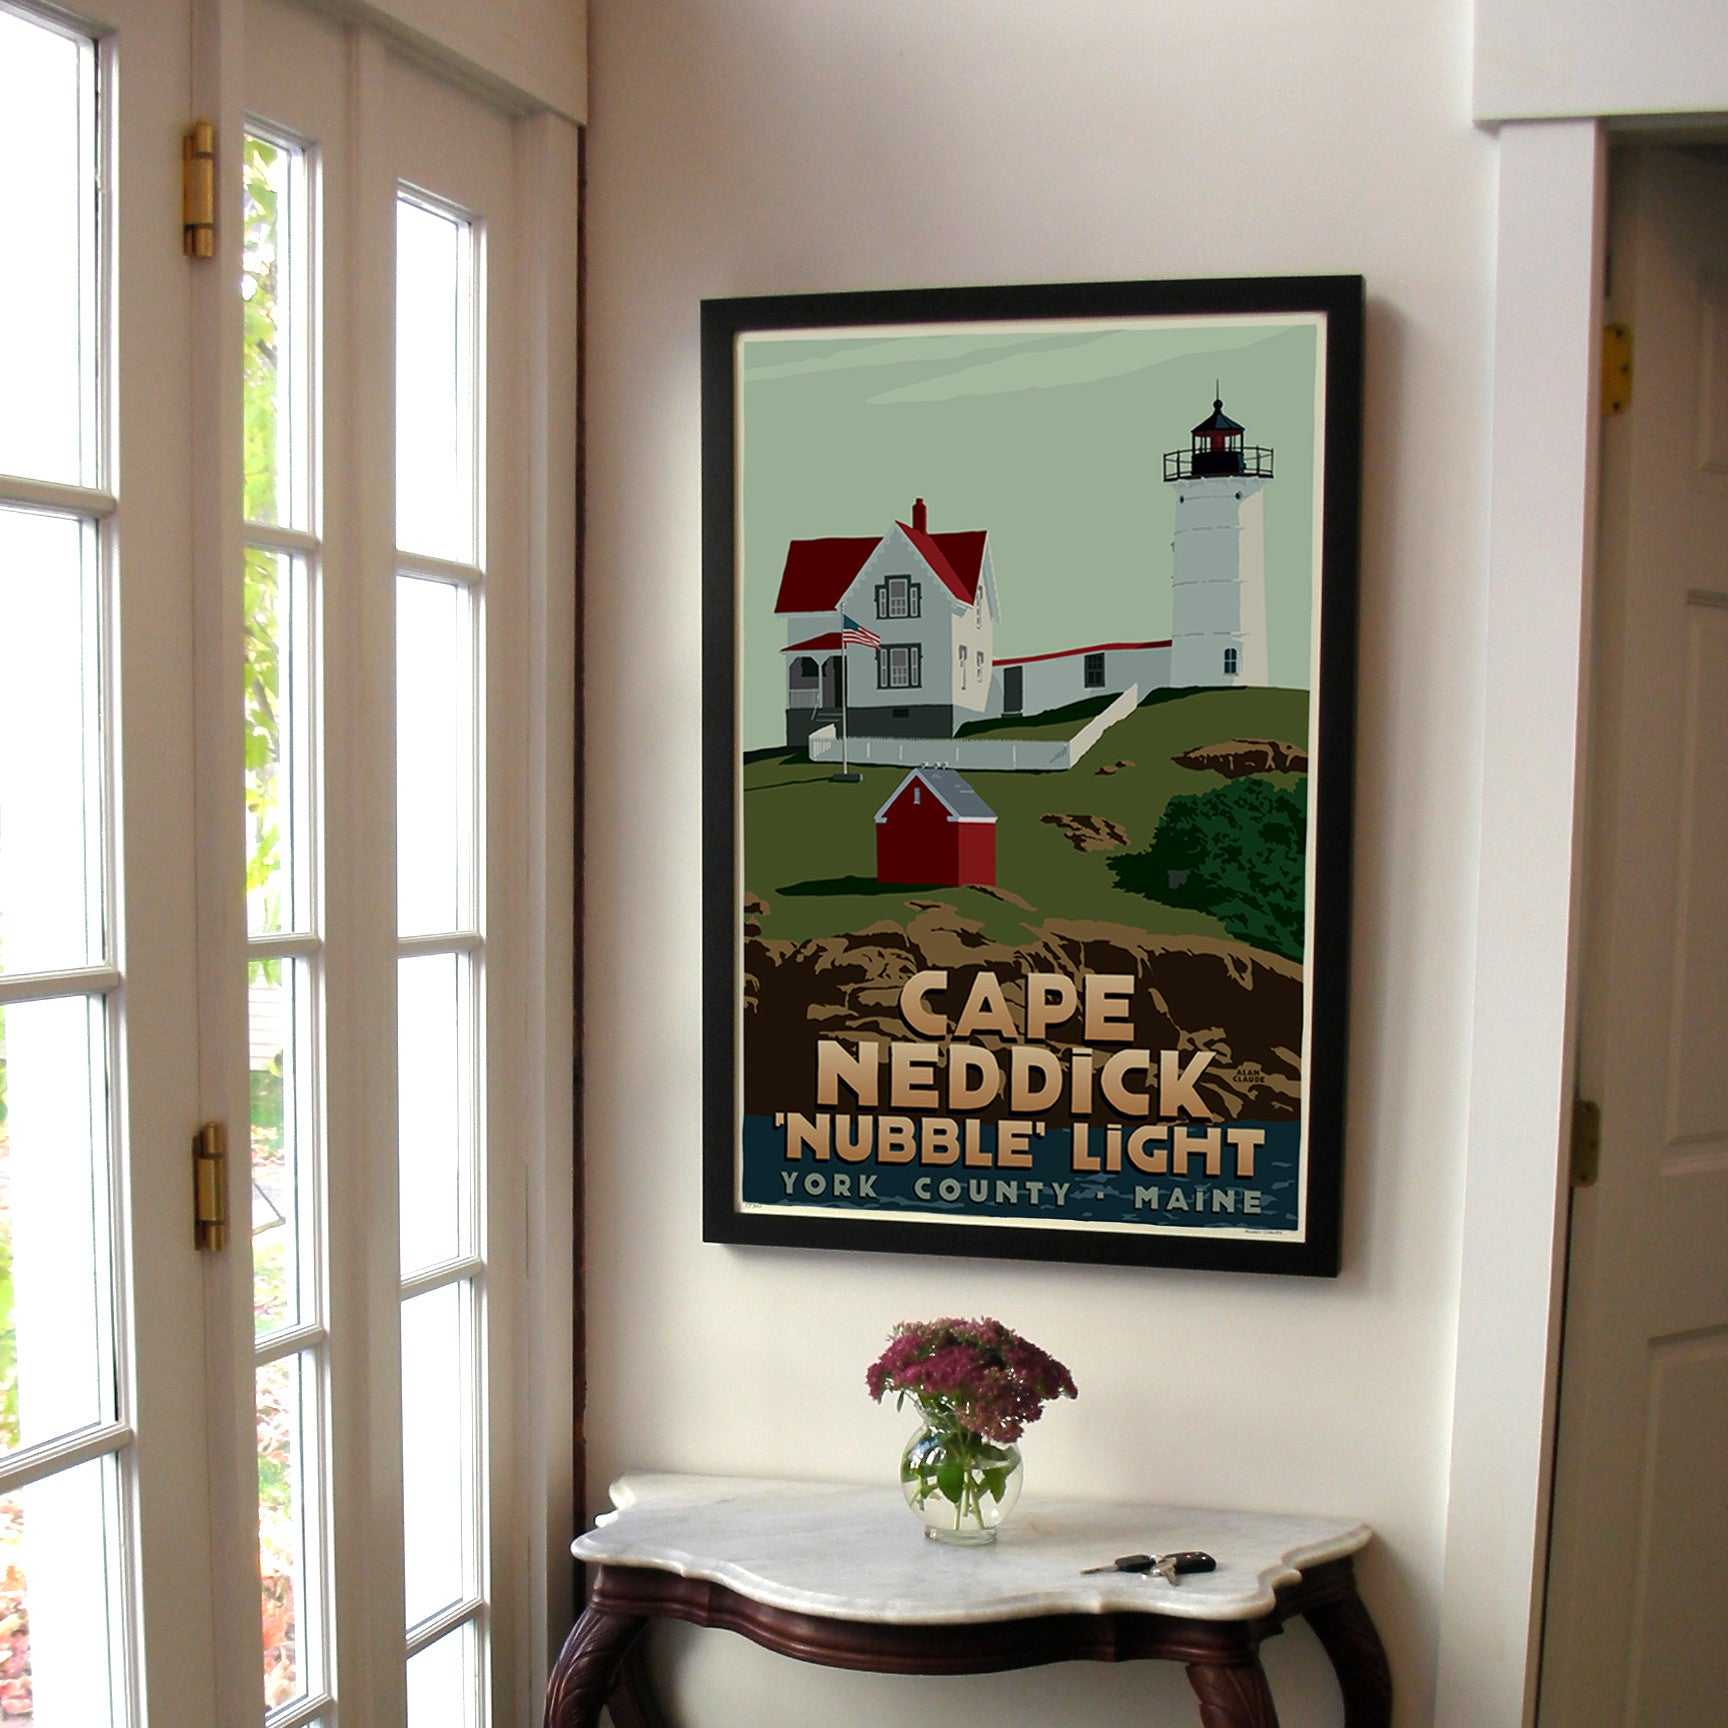 "Cape Neddick Nubble Light Art Print 24"" x 36"" Framed Travel Poster - Maine"